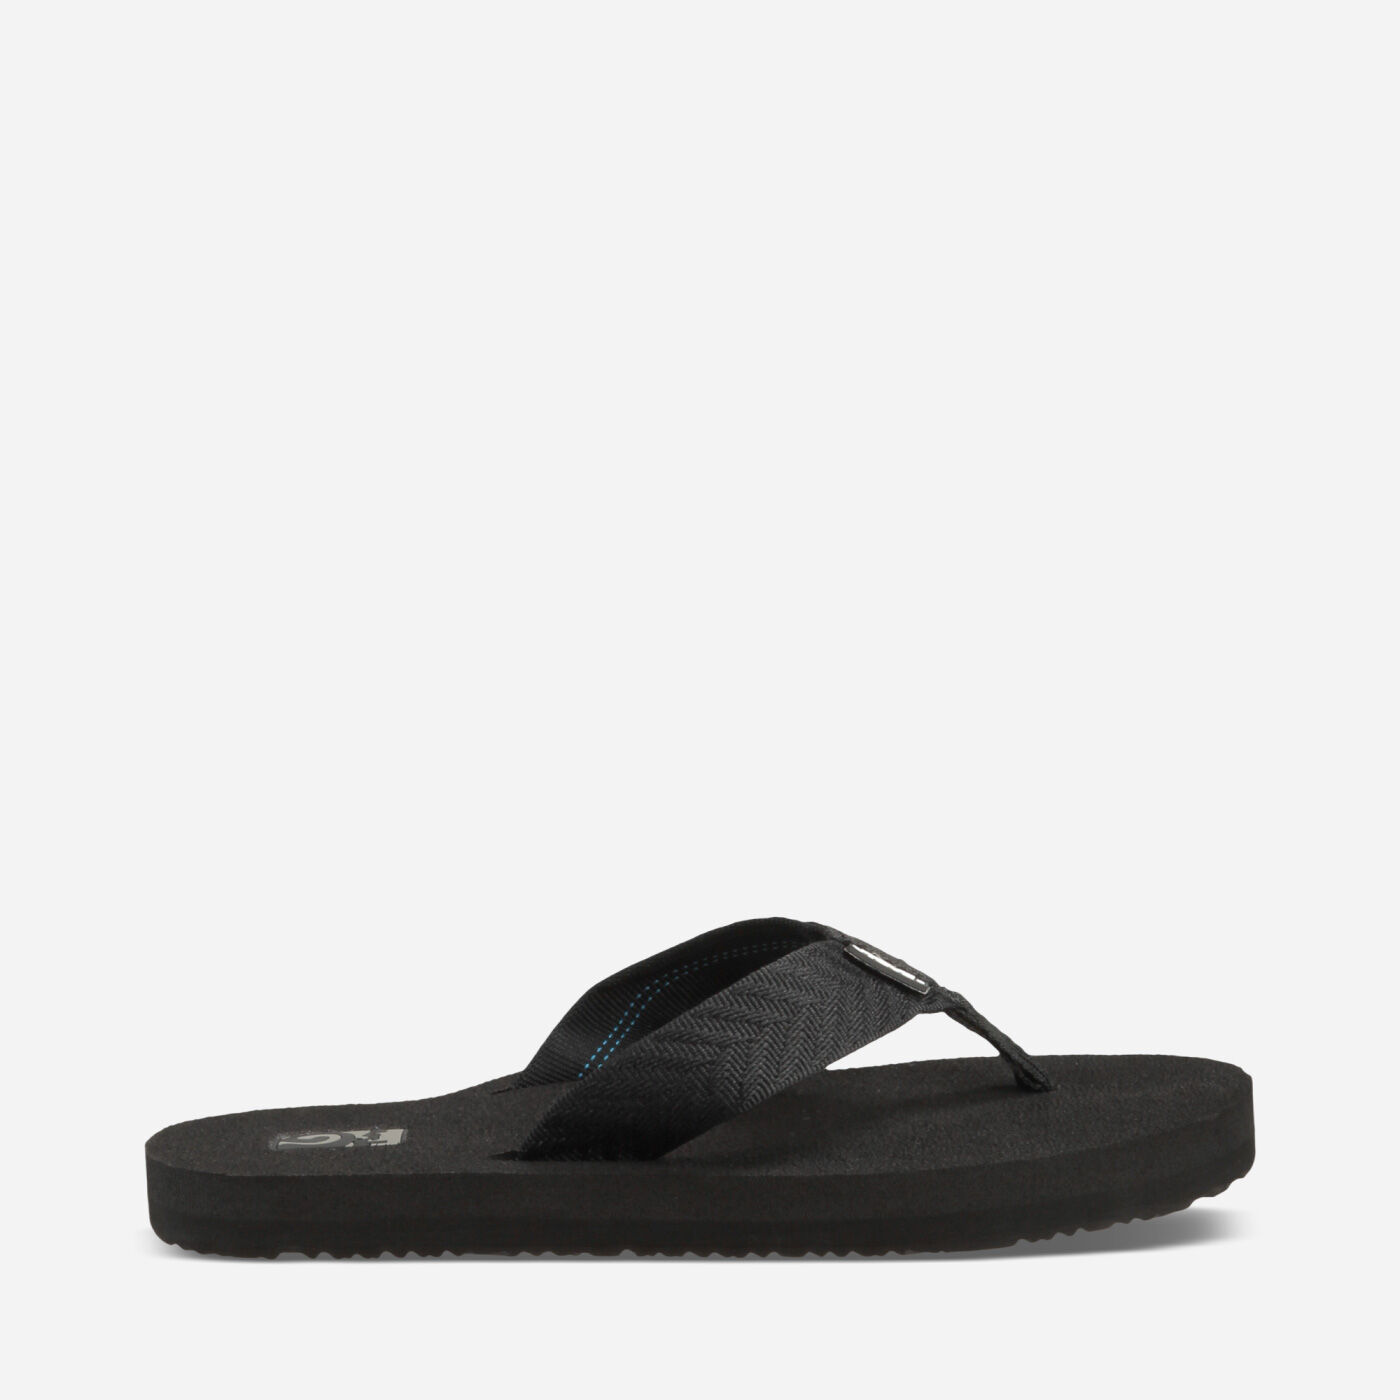 Black sandals with straps - Mush Ii